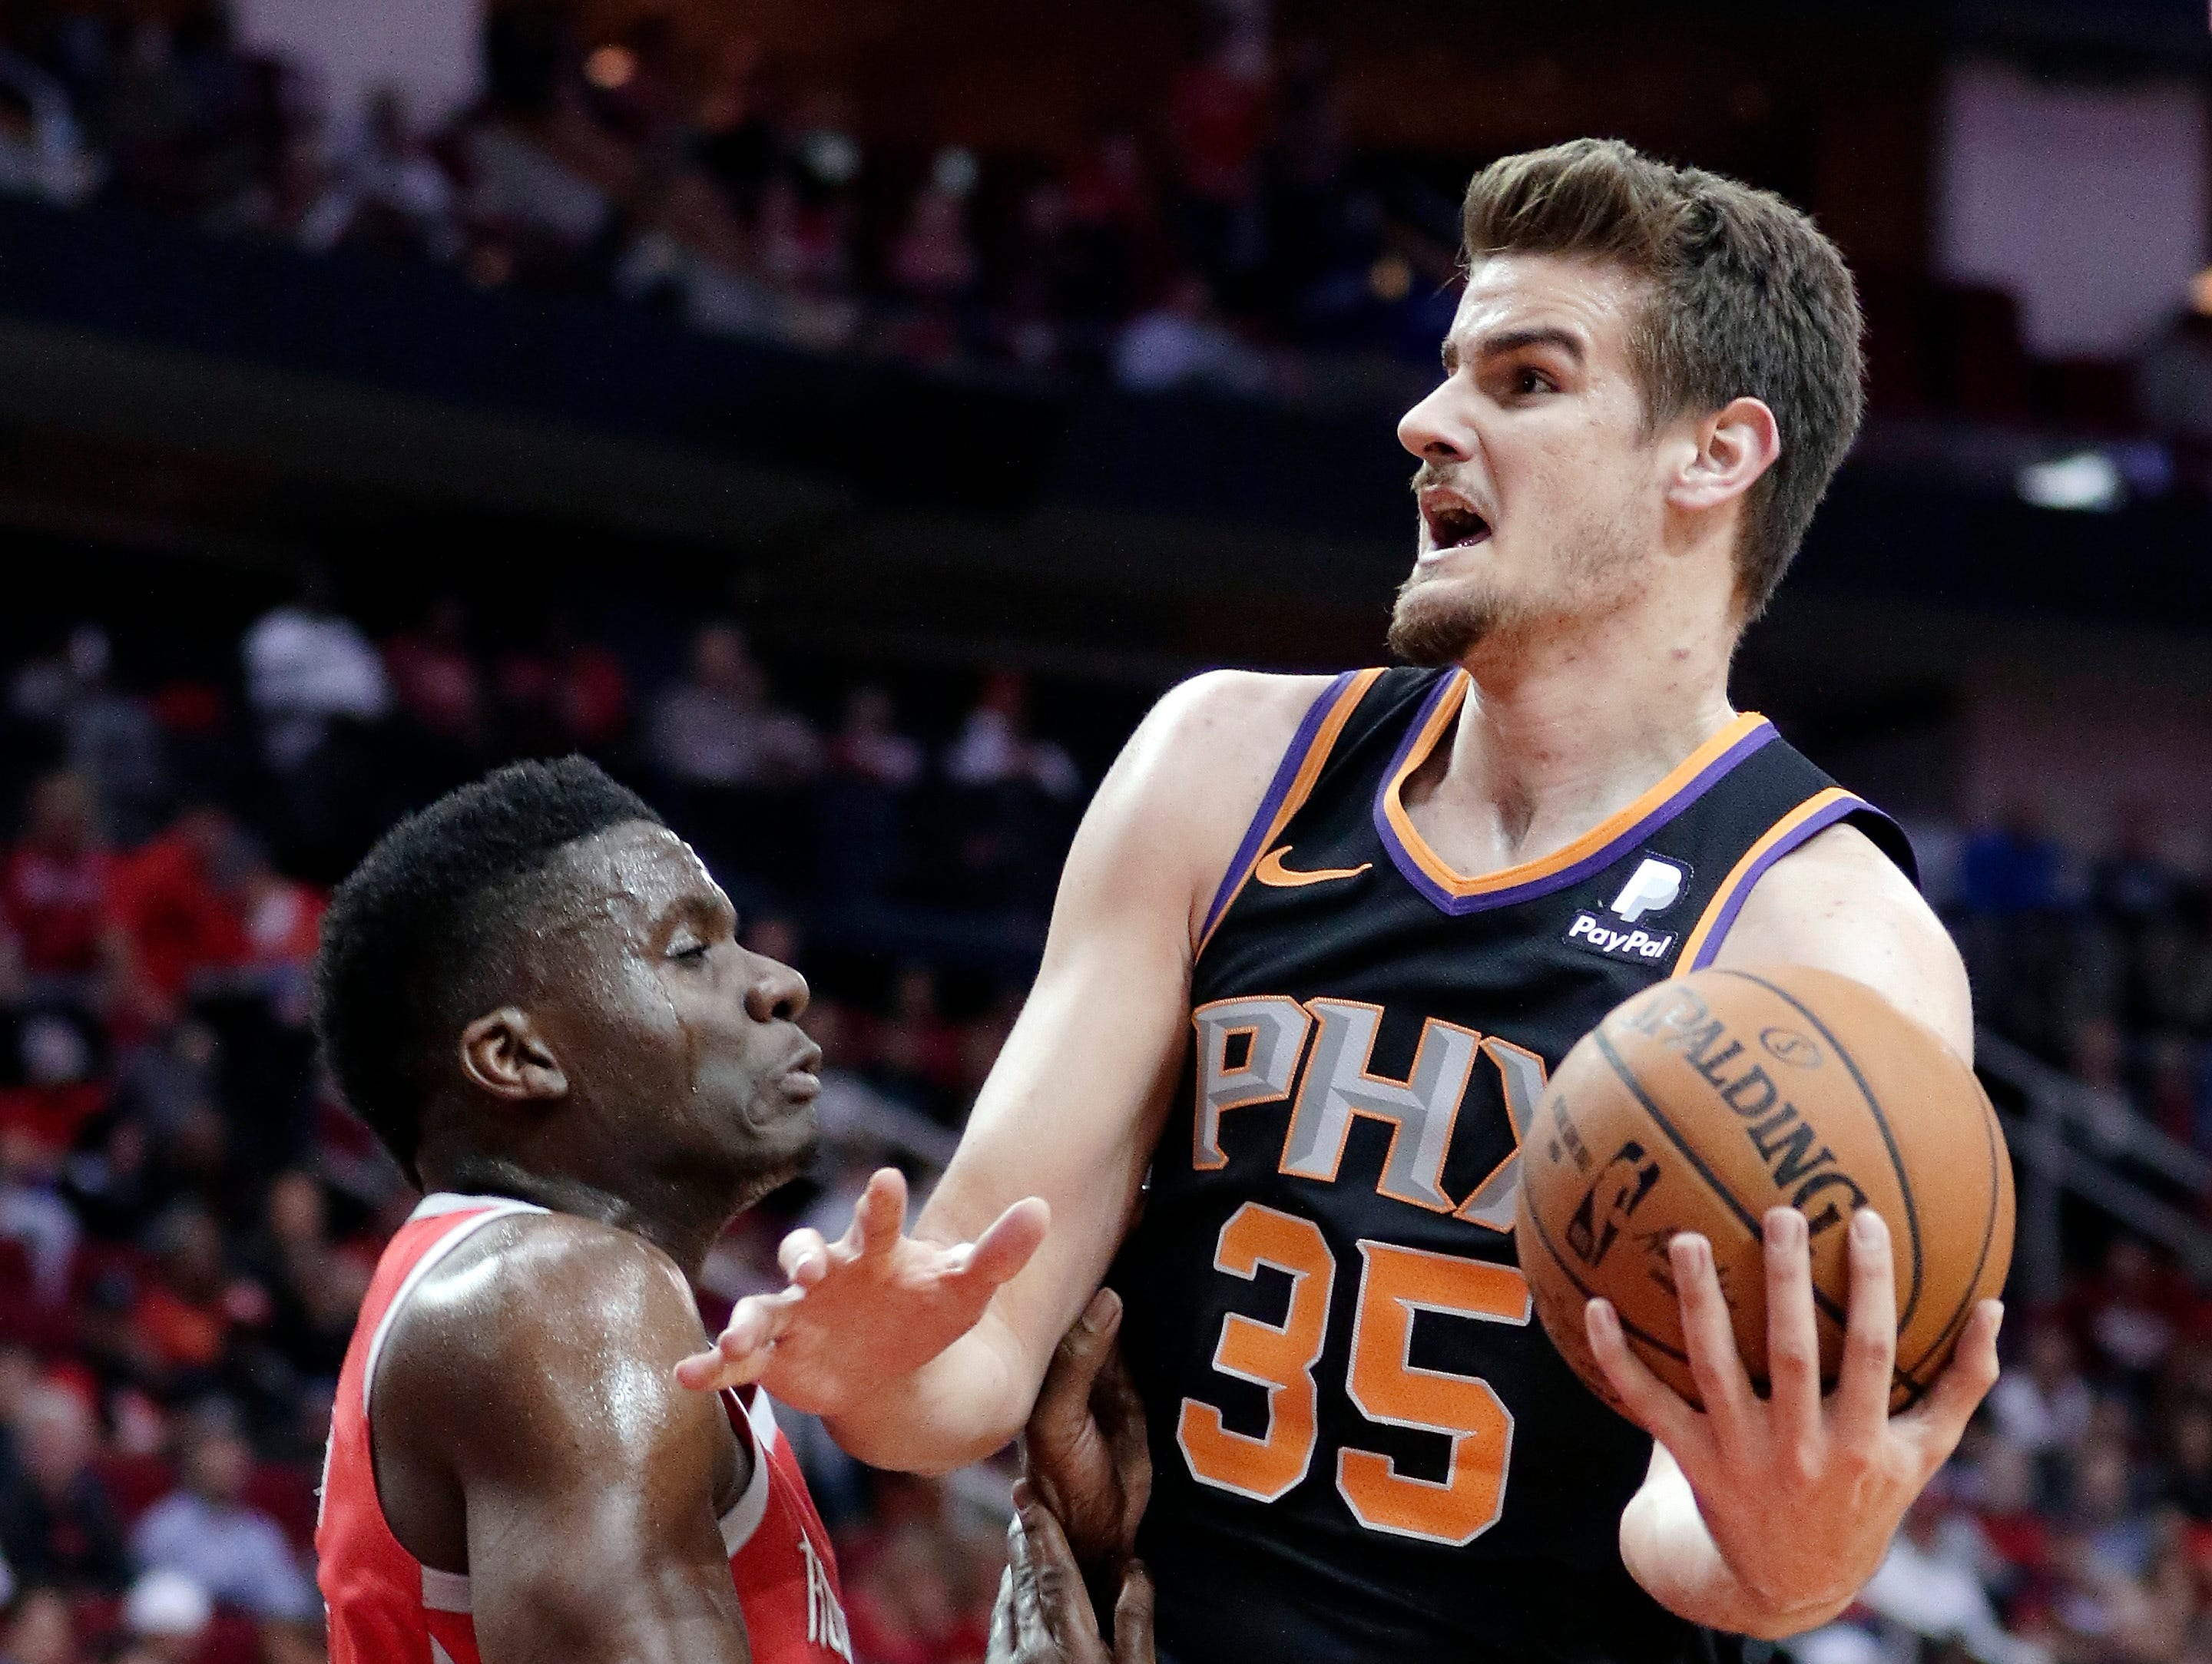 Phoenix Suns forward Dragan Bender (35) drives to shoot over Houston Rockets center Clint Capela, left, during the first half of an NBA basketball game Sunday, April 7, 2019, in Houston. (AP Photo/Michael Wyke)